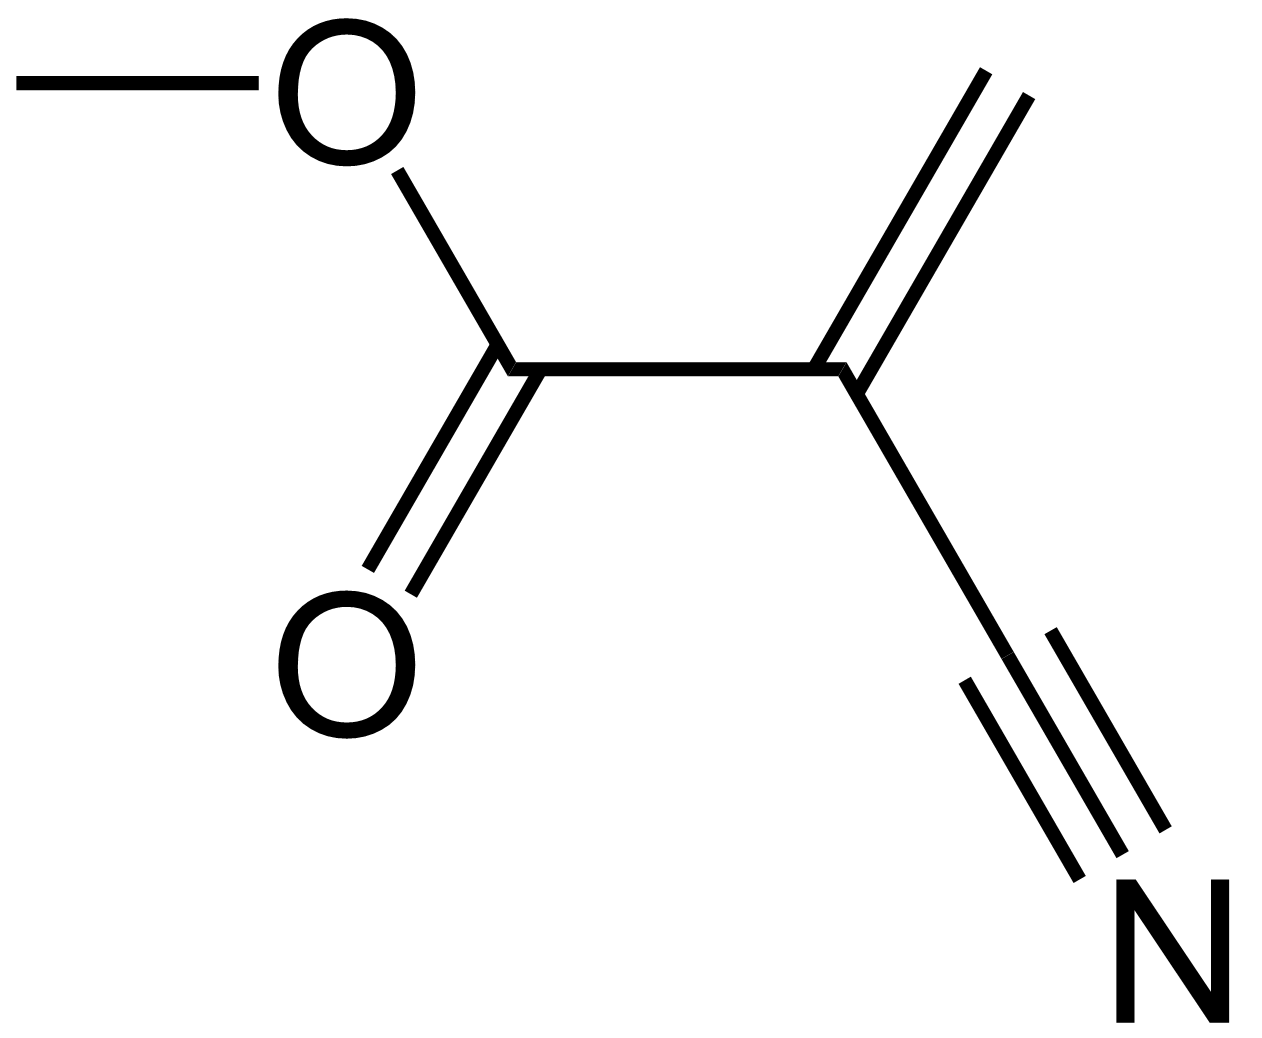 File:Methyl-cyanoacrylate-2D-color.png - Wikimedia Commons